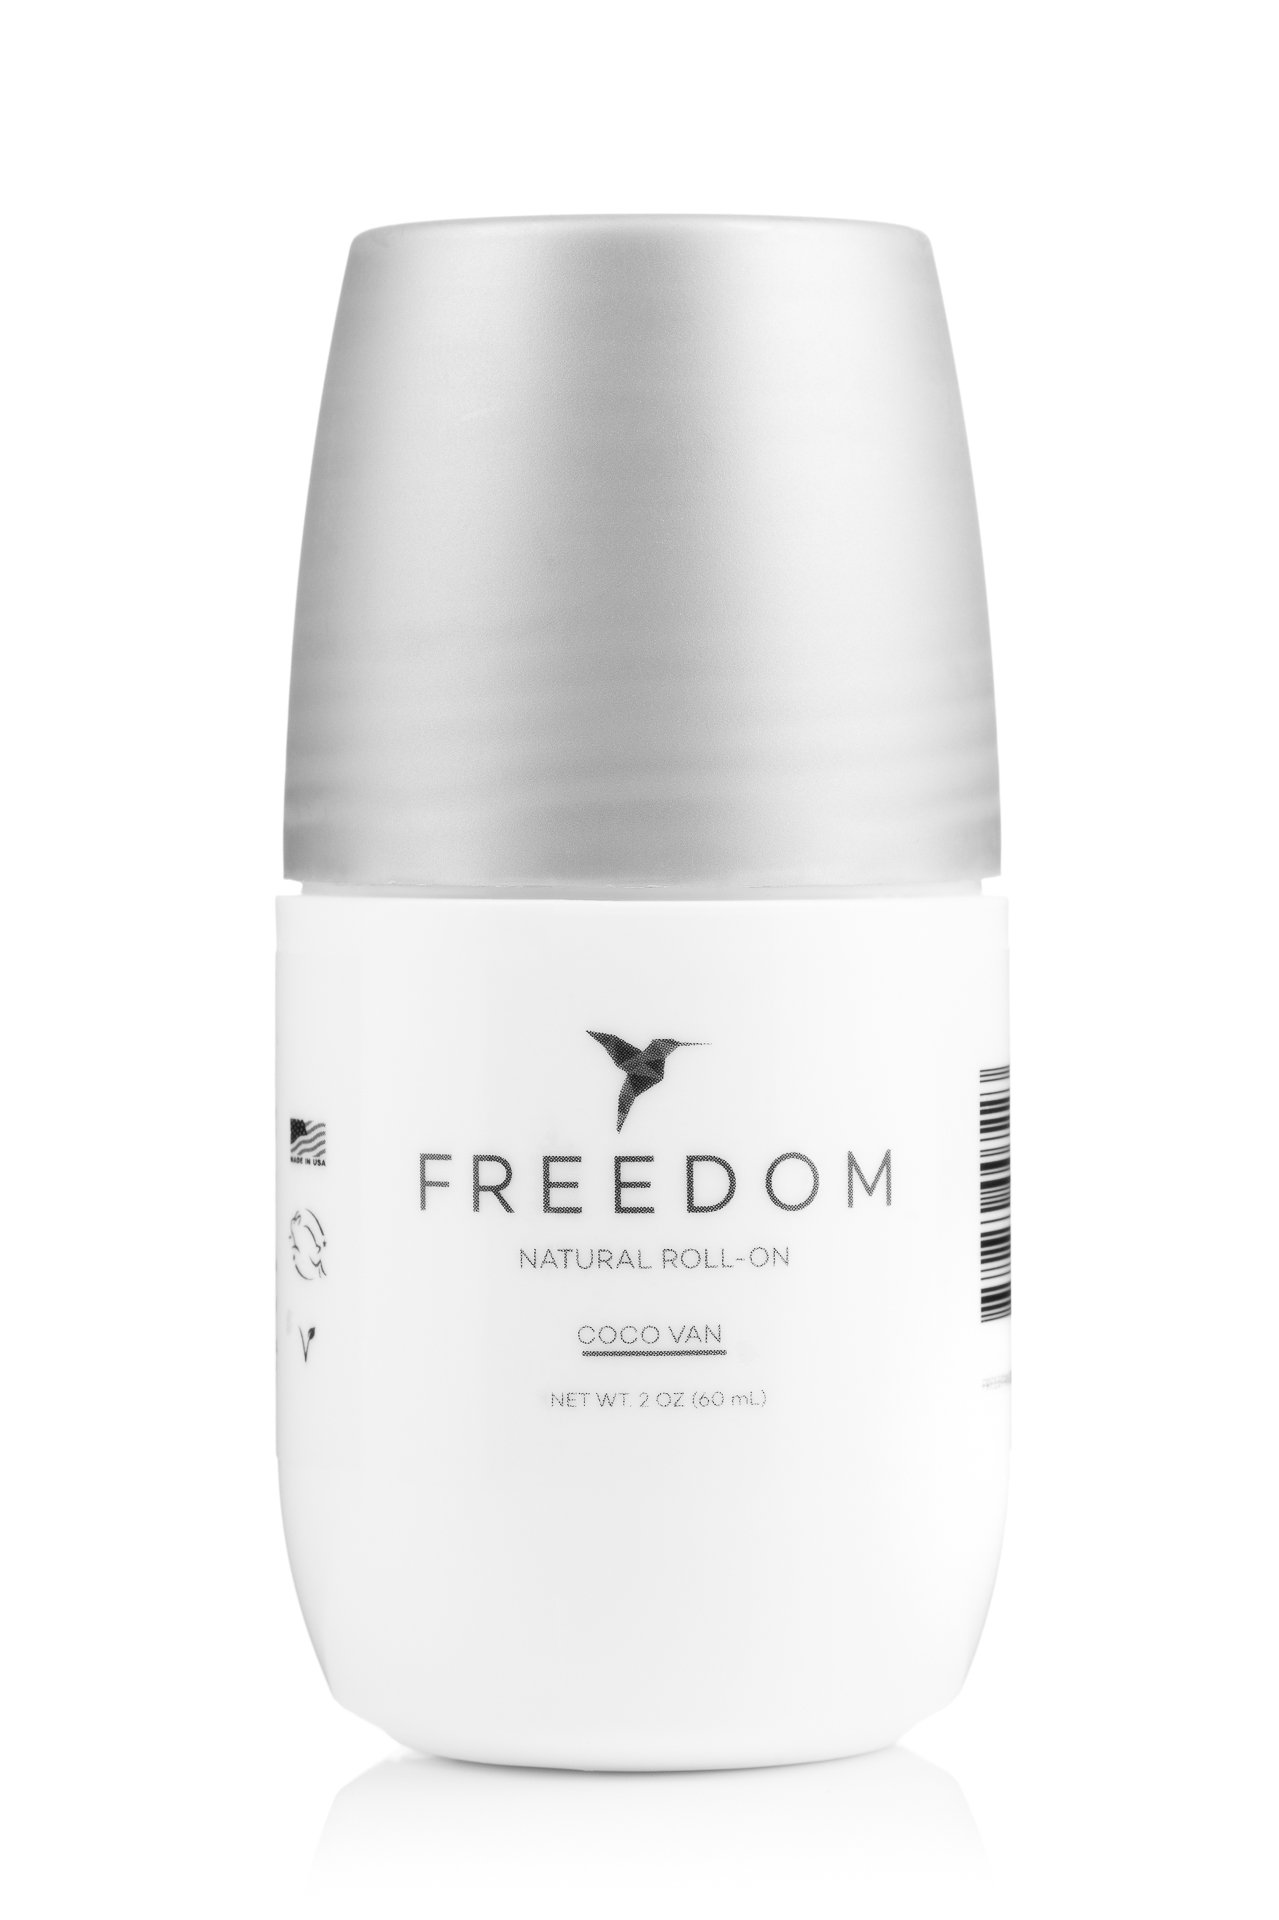 Freedom All-Natural, Aluminum Free Roll-on Deodorant for Men and Women That Works All Day (Coco-Van)